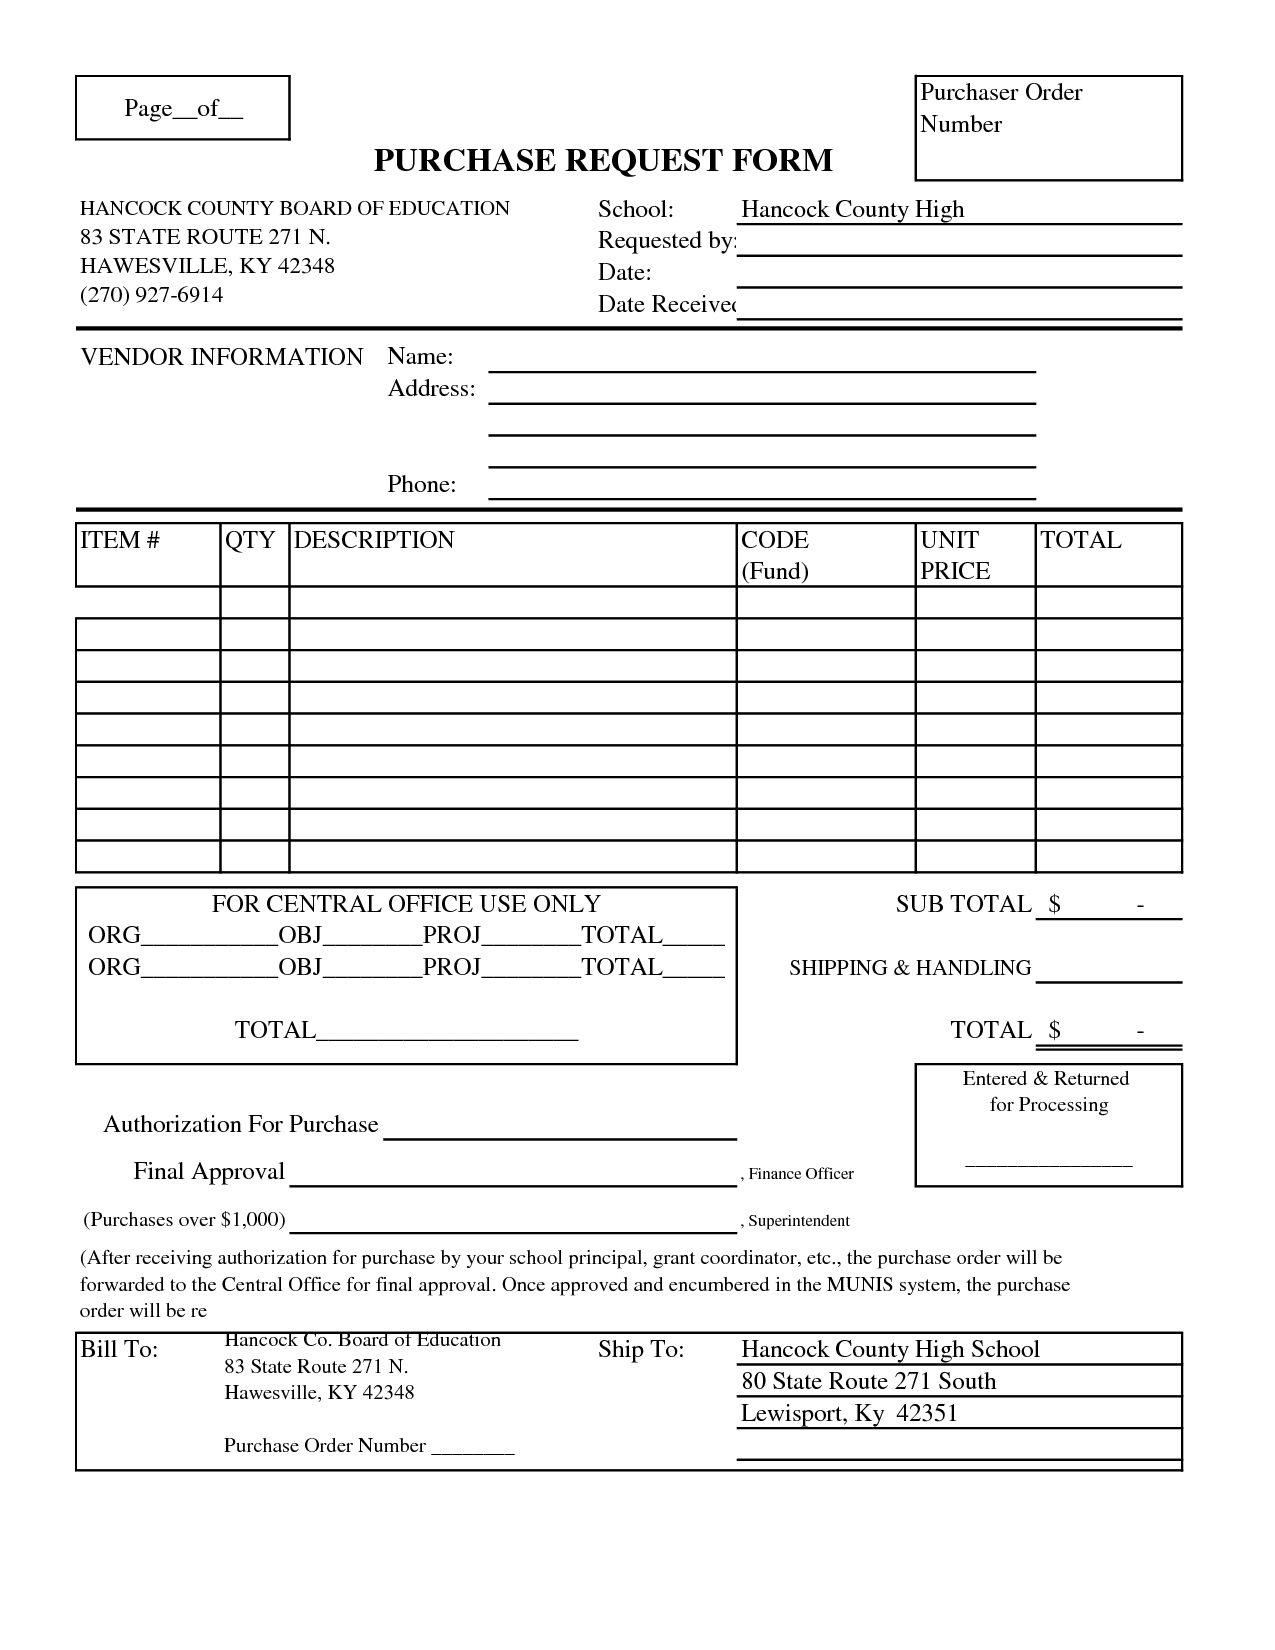 7 best images of blank printable purchase order blank for It purchase request form template